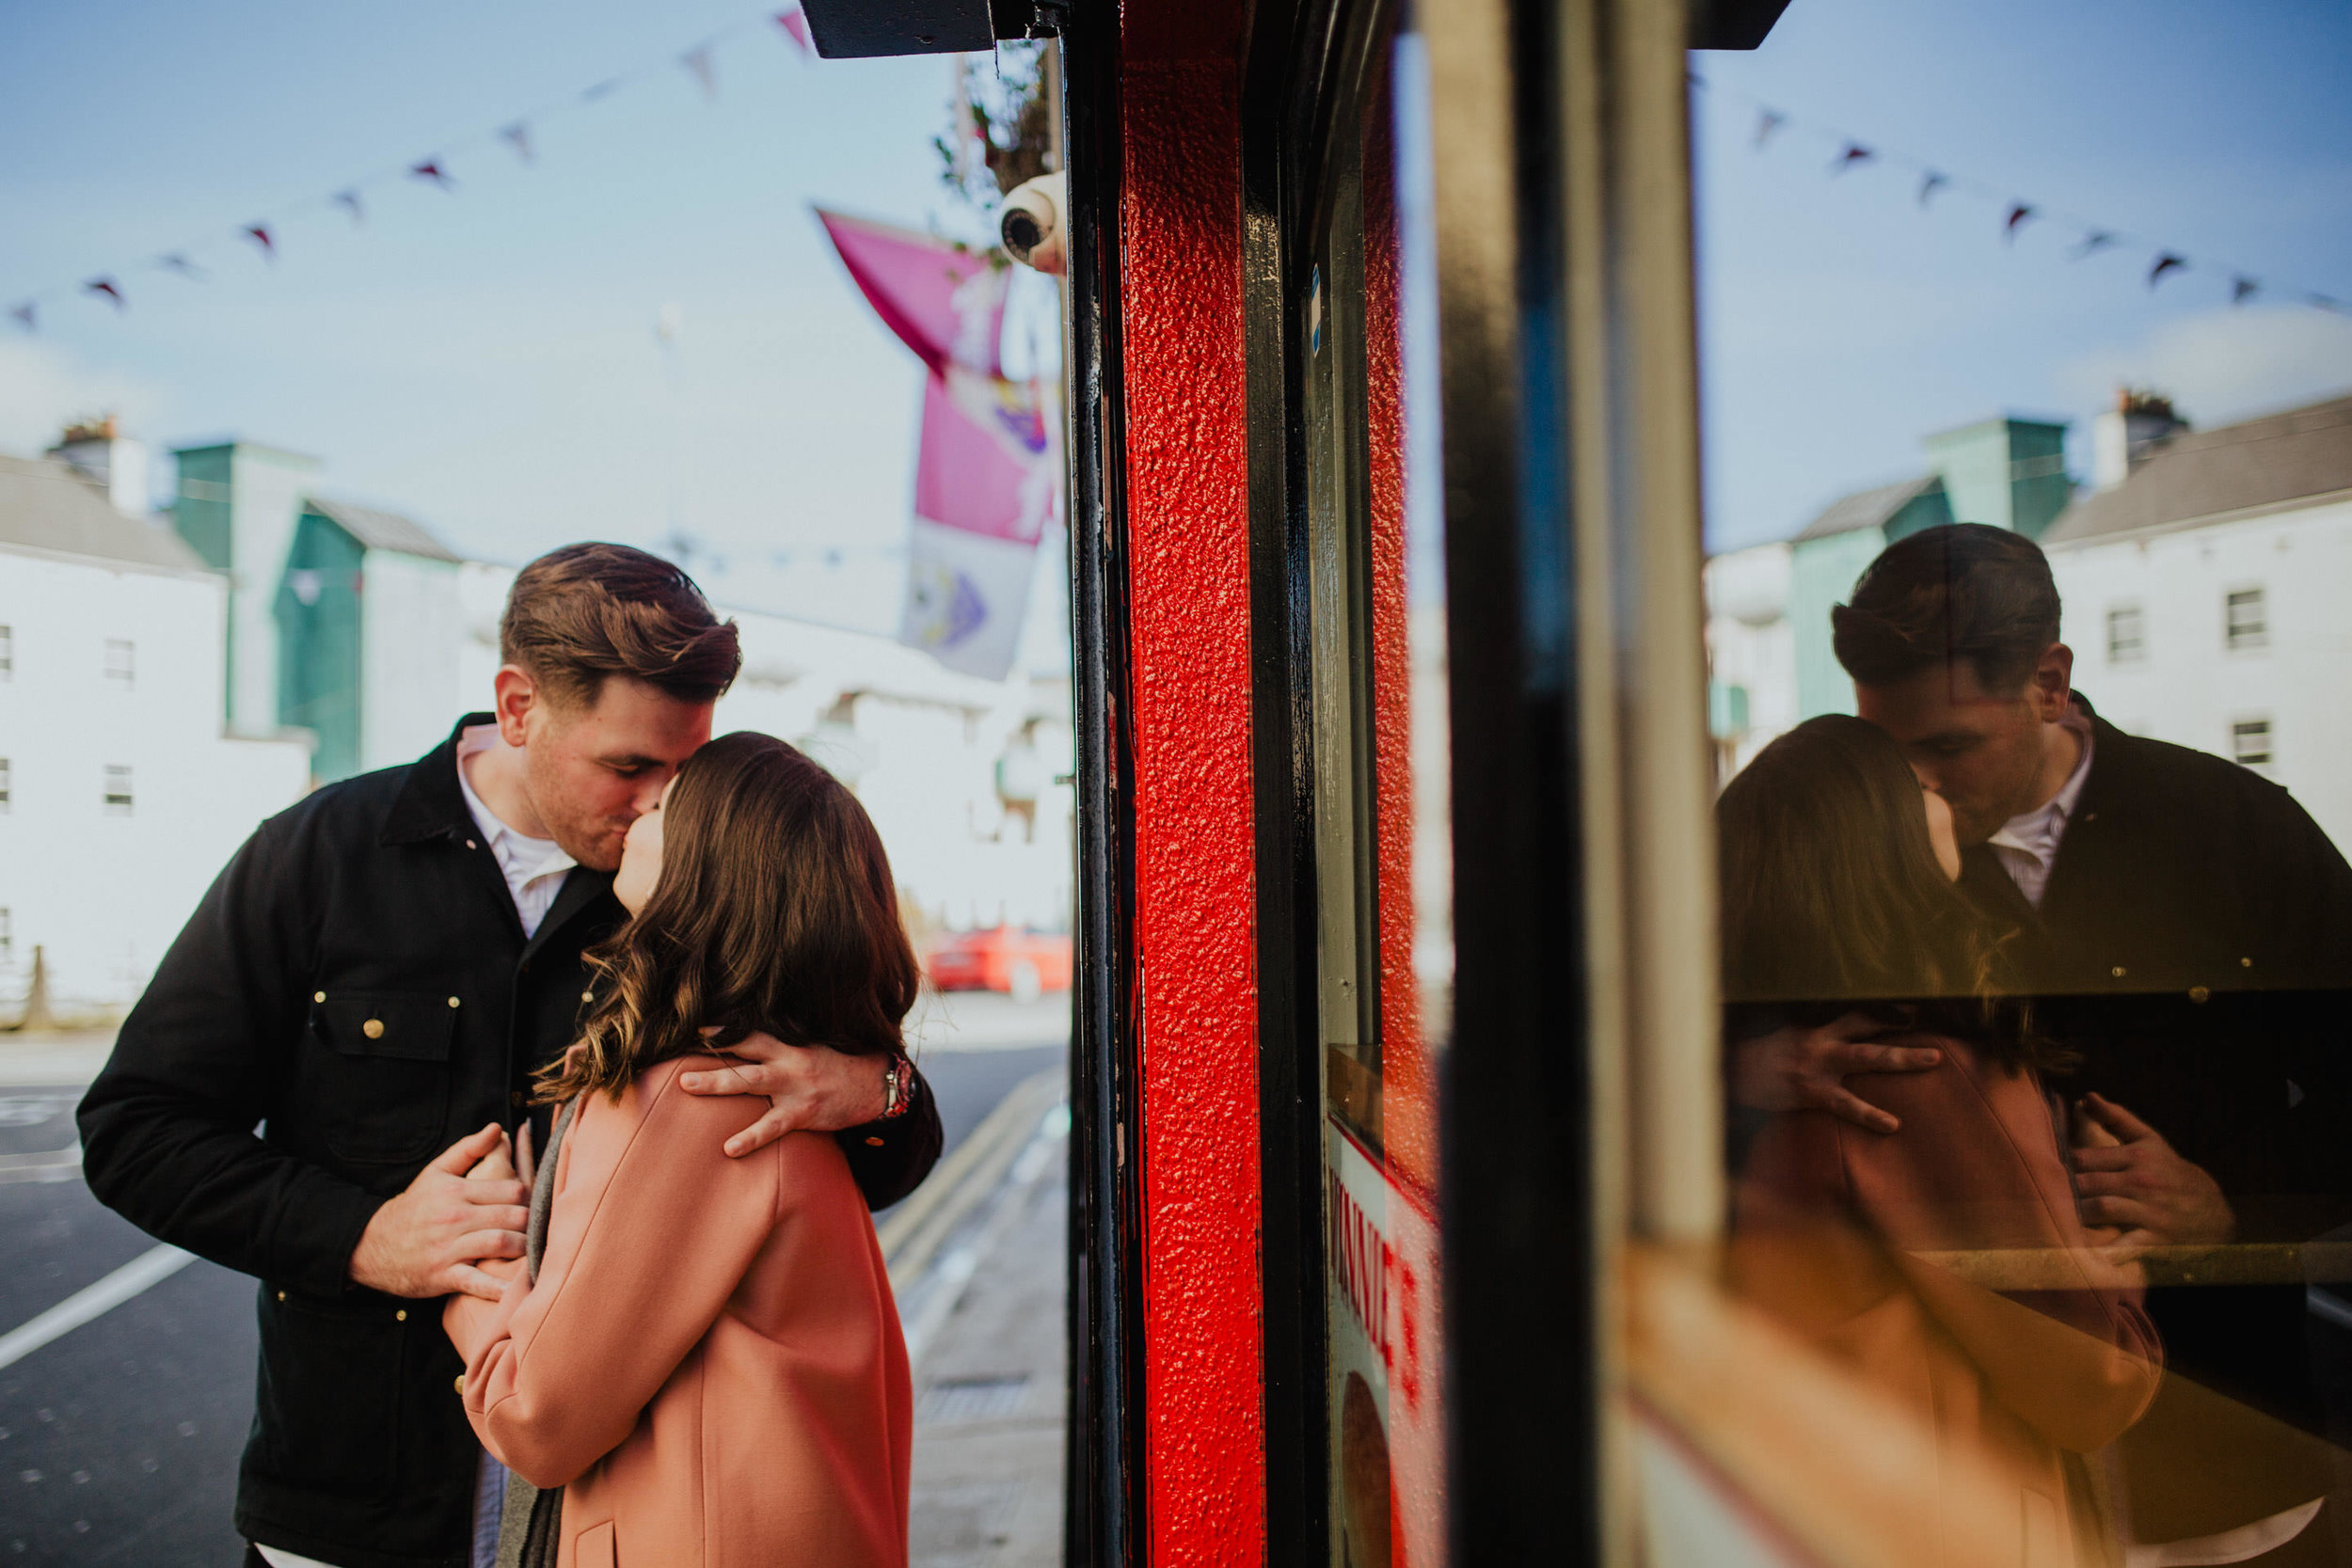 galway_city_engagement_photos_liviafigueiredo_69.jpg